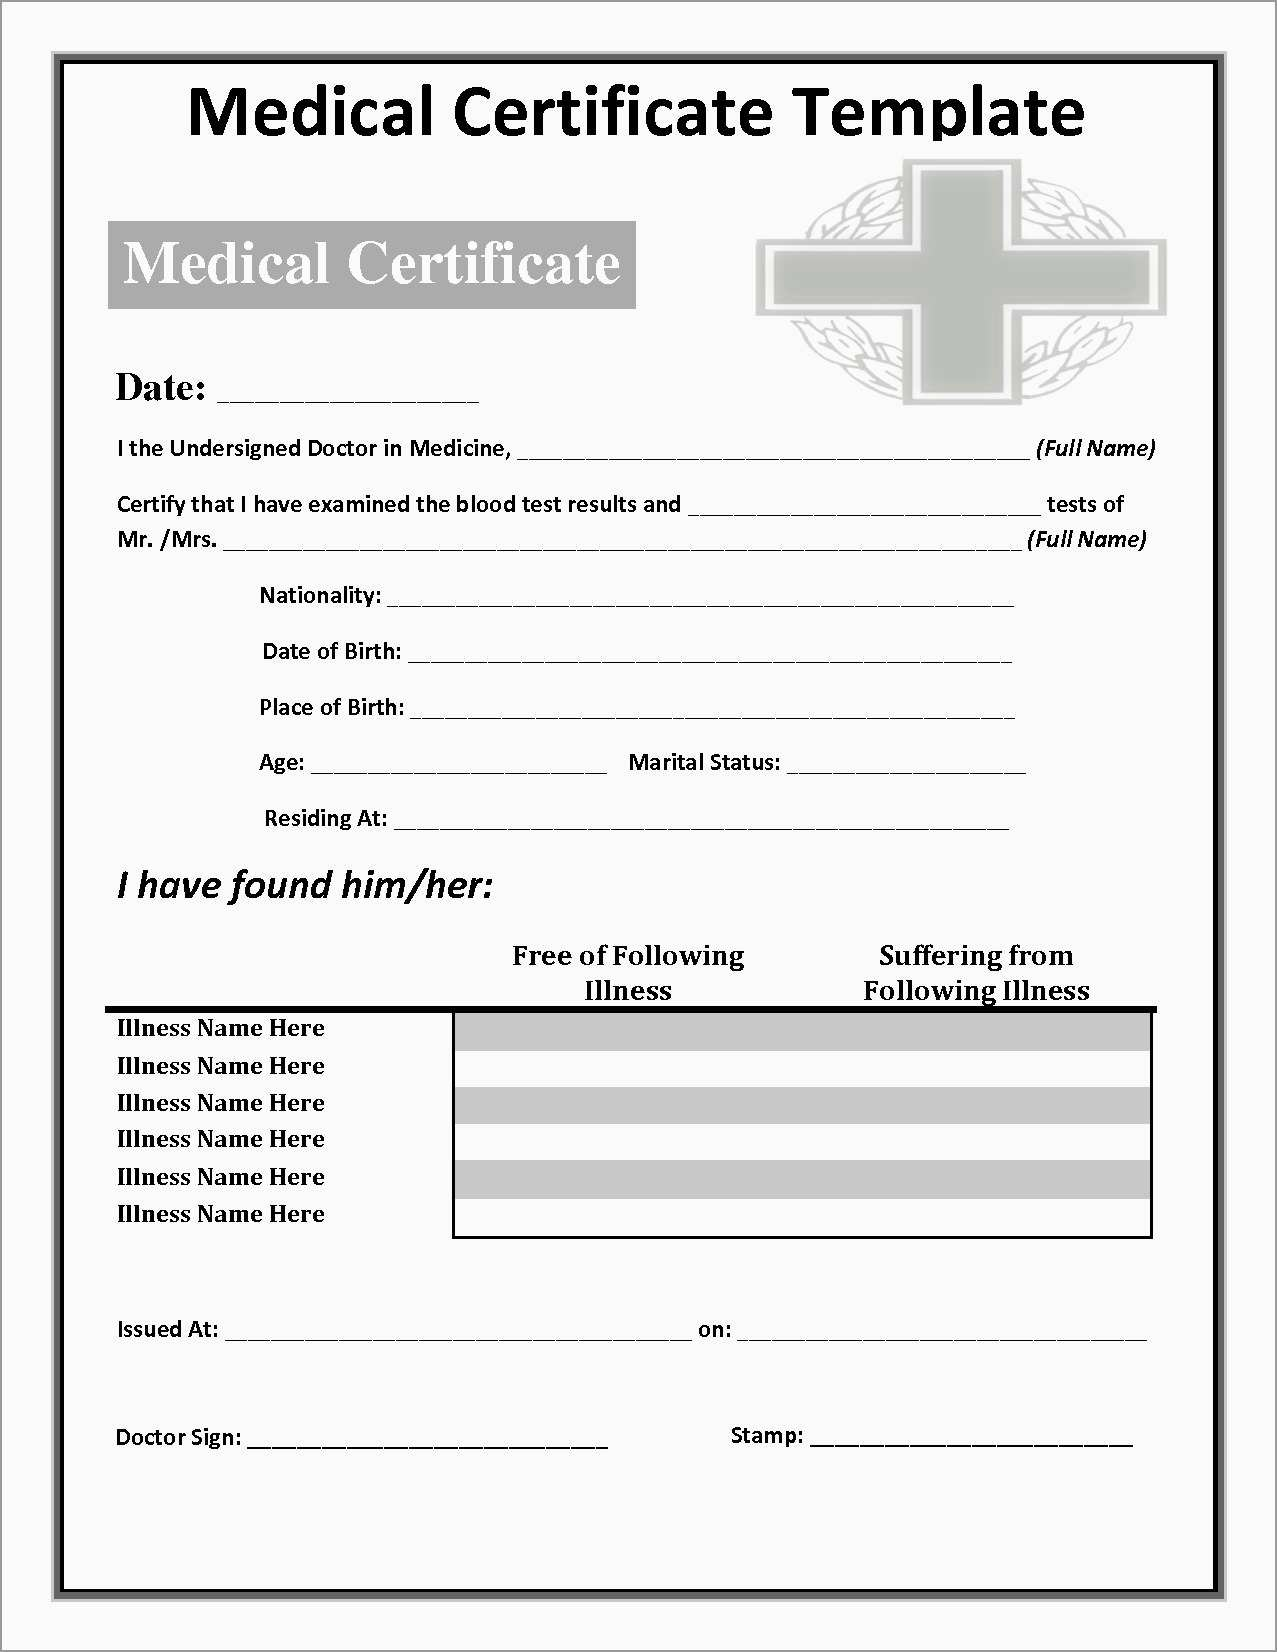 Free Printable Doctors Notes Templates Best Free Printable Doctors - Doctor Notes For Free Printable